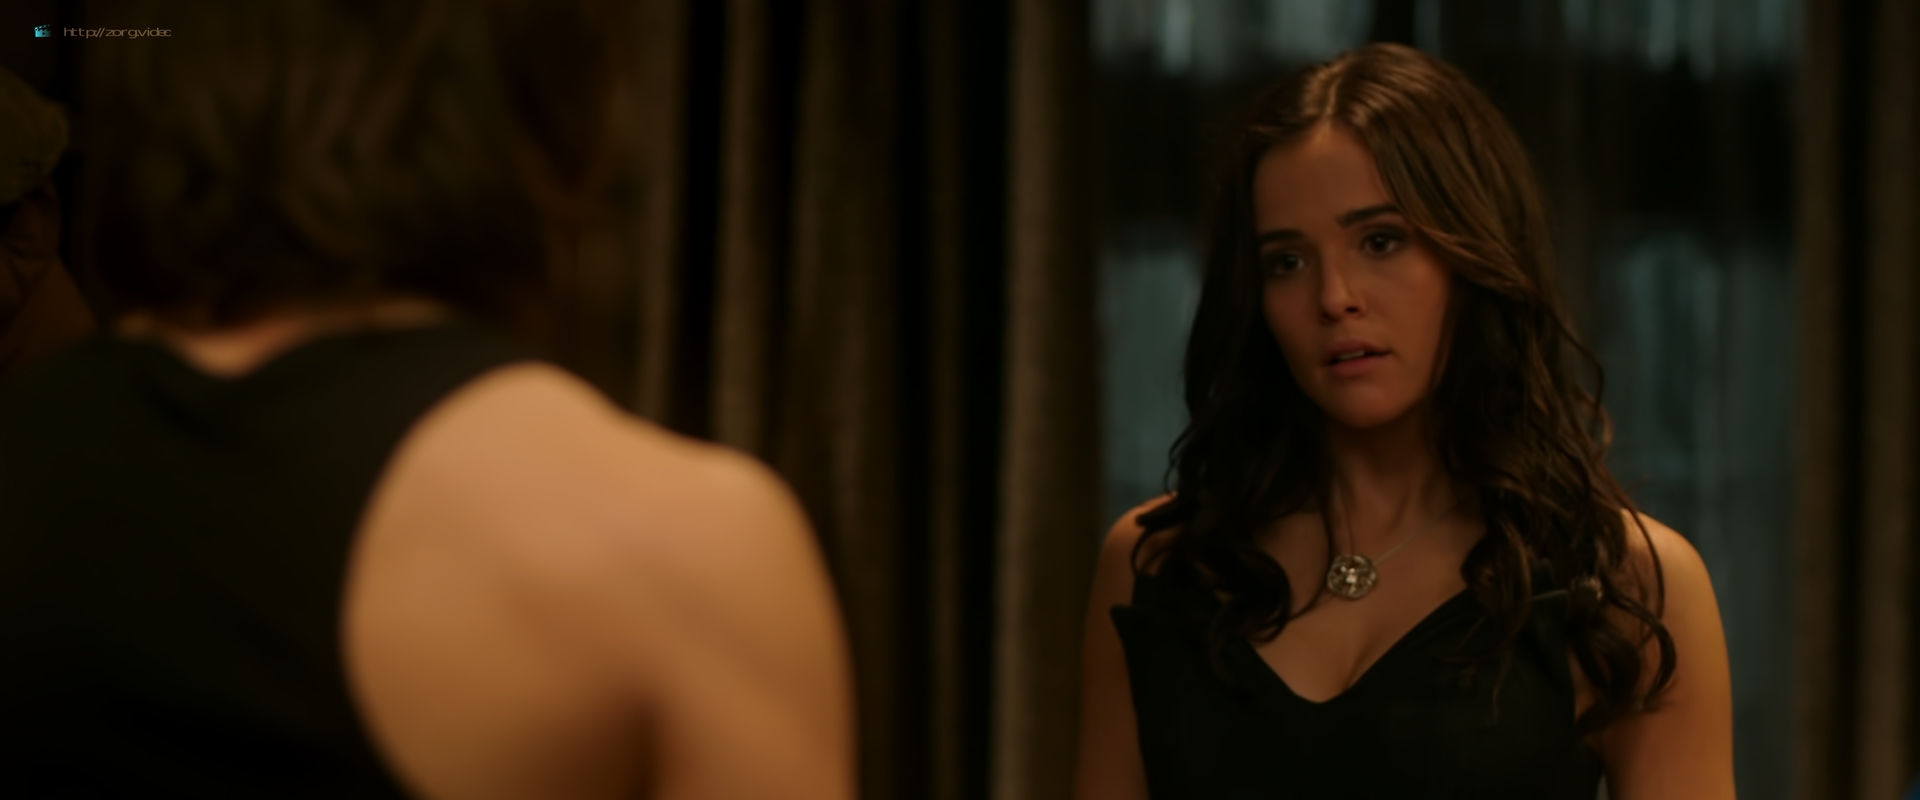 Zoey Deutch hot and sexy in black lingerie and some mild sex in - Vampire Academy (2014) HD 1080p BluRay (9)